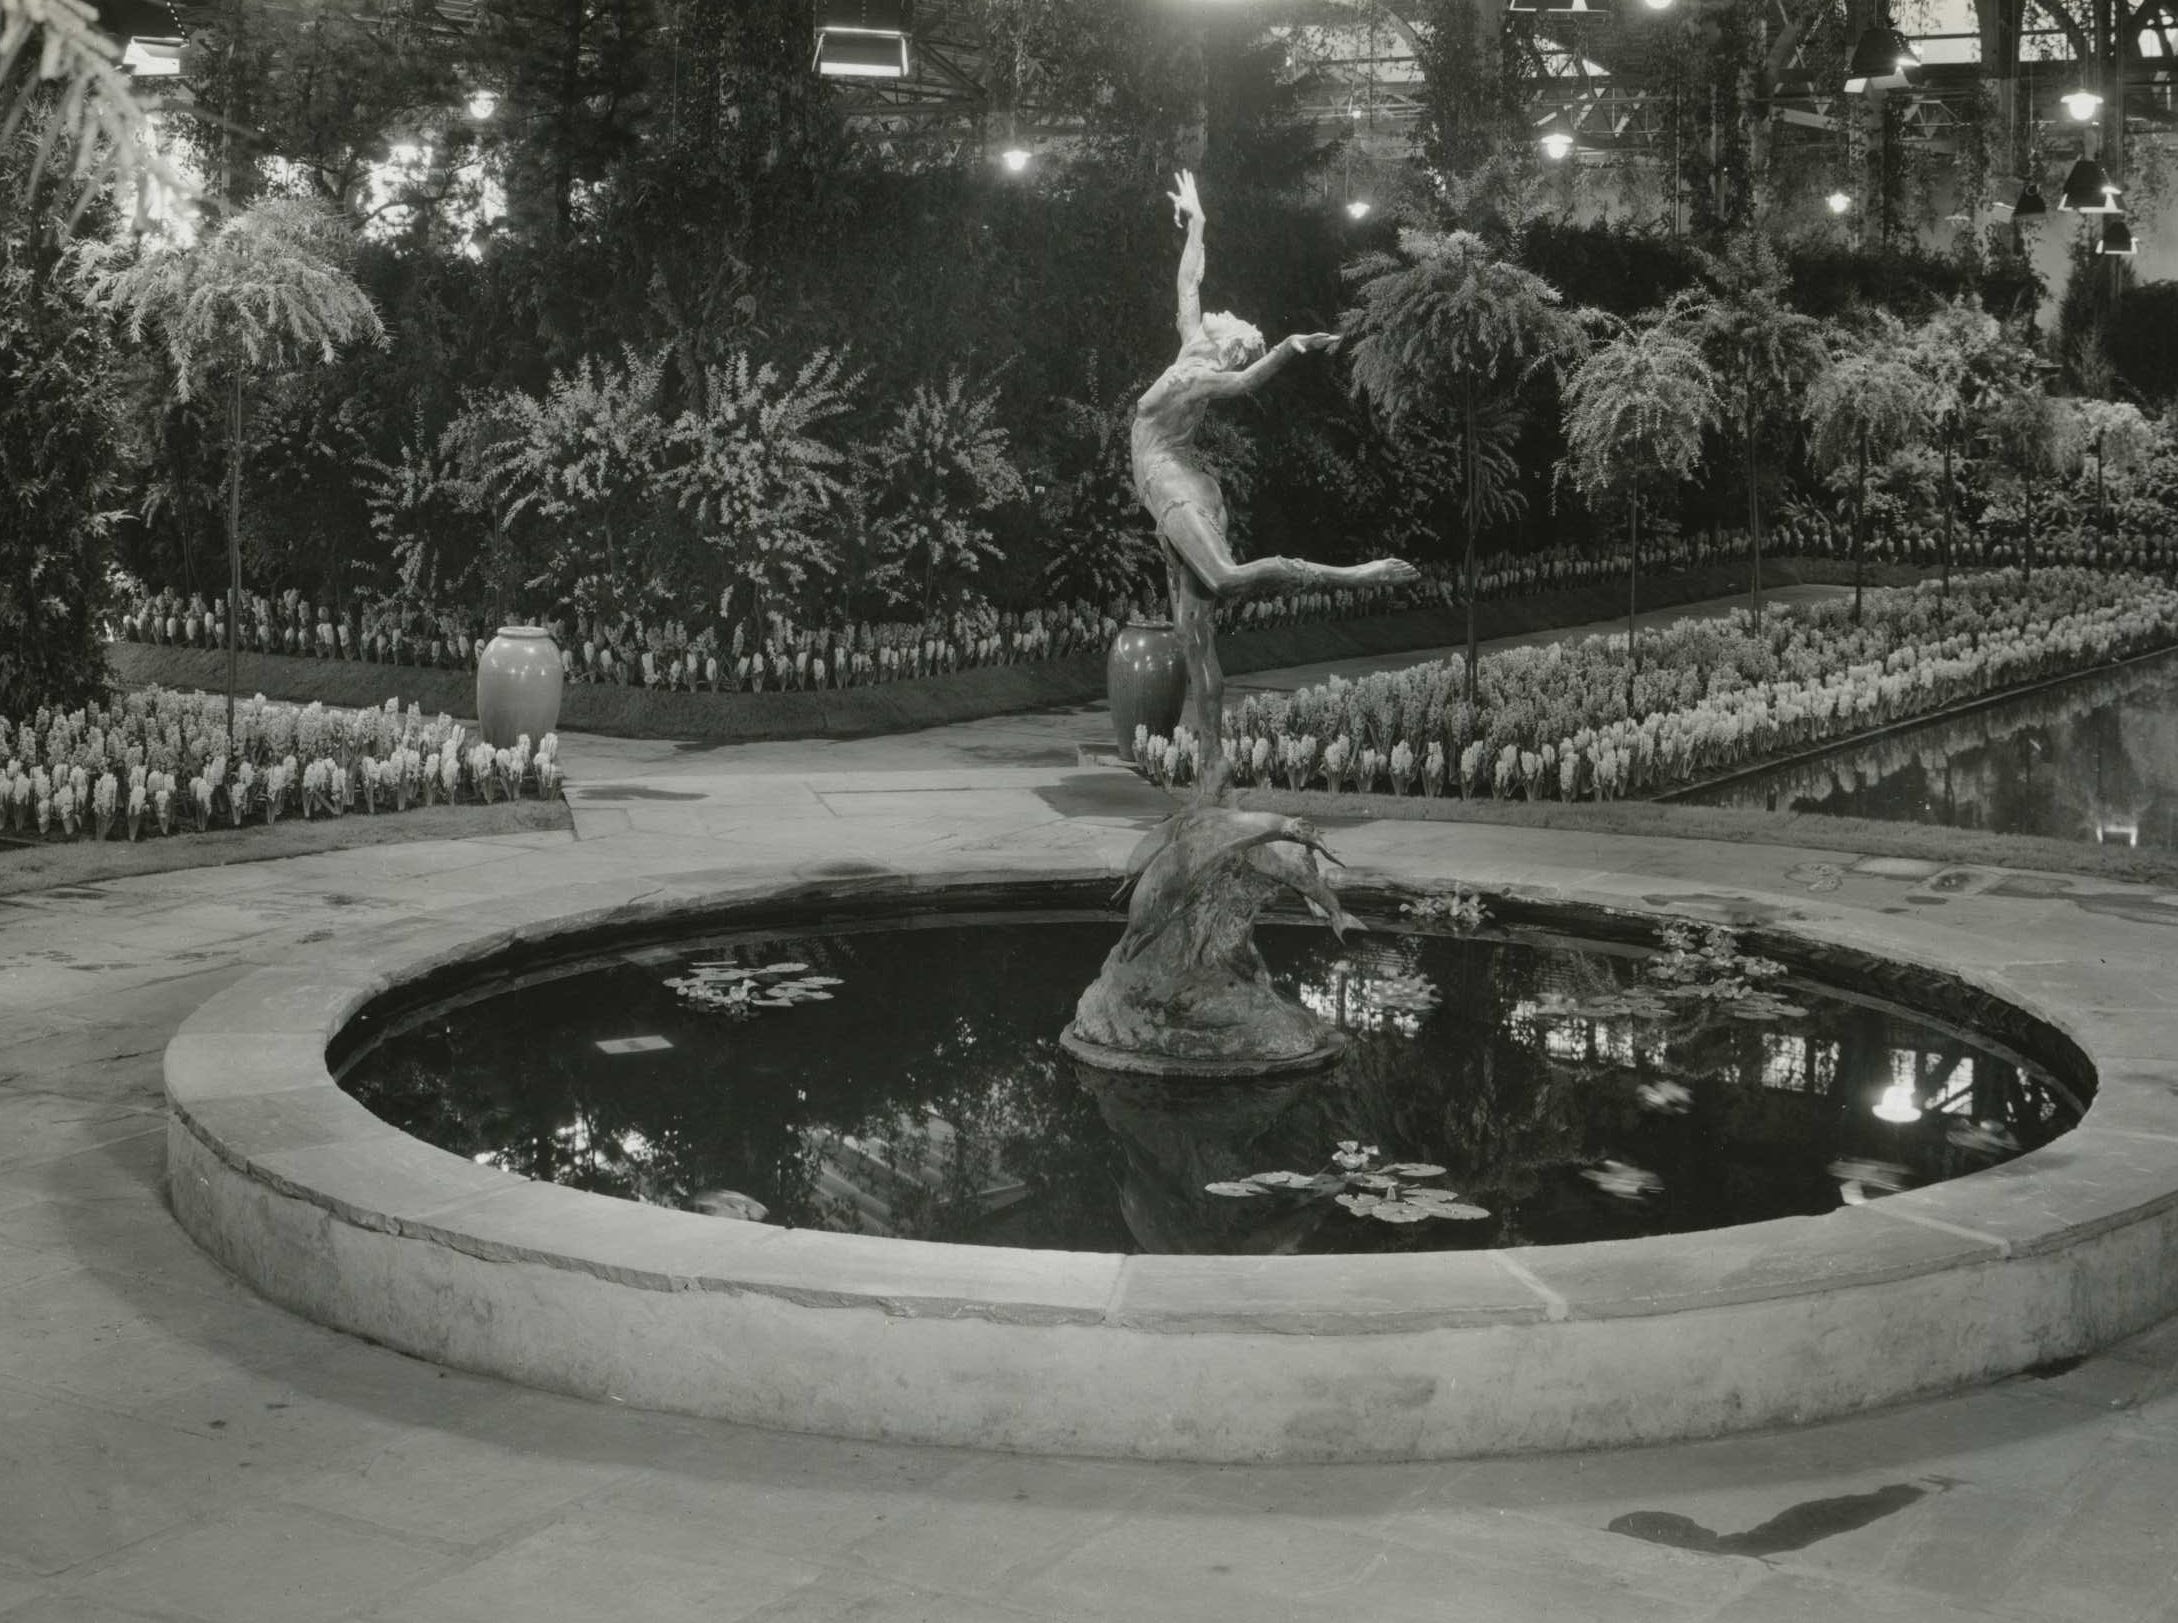 The fountain at the 1935 Philadelphia Flower Show.